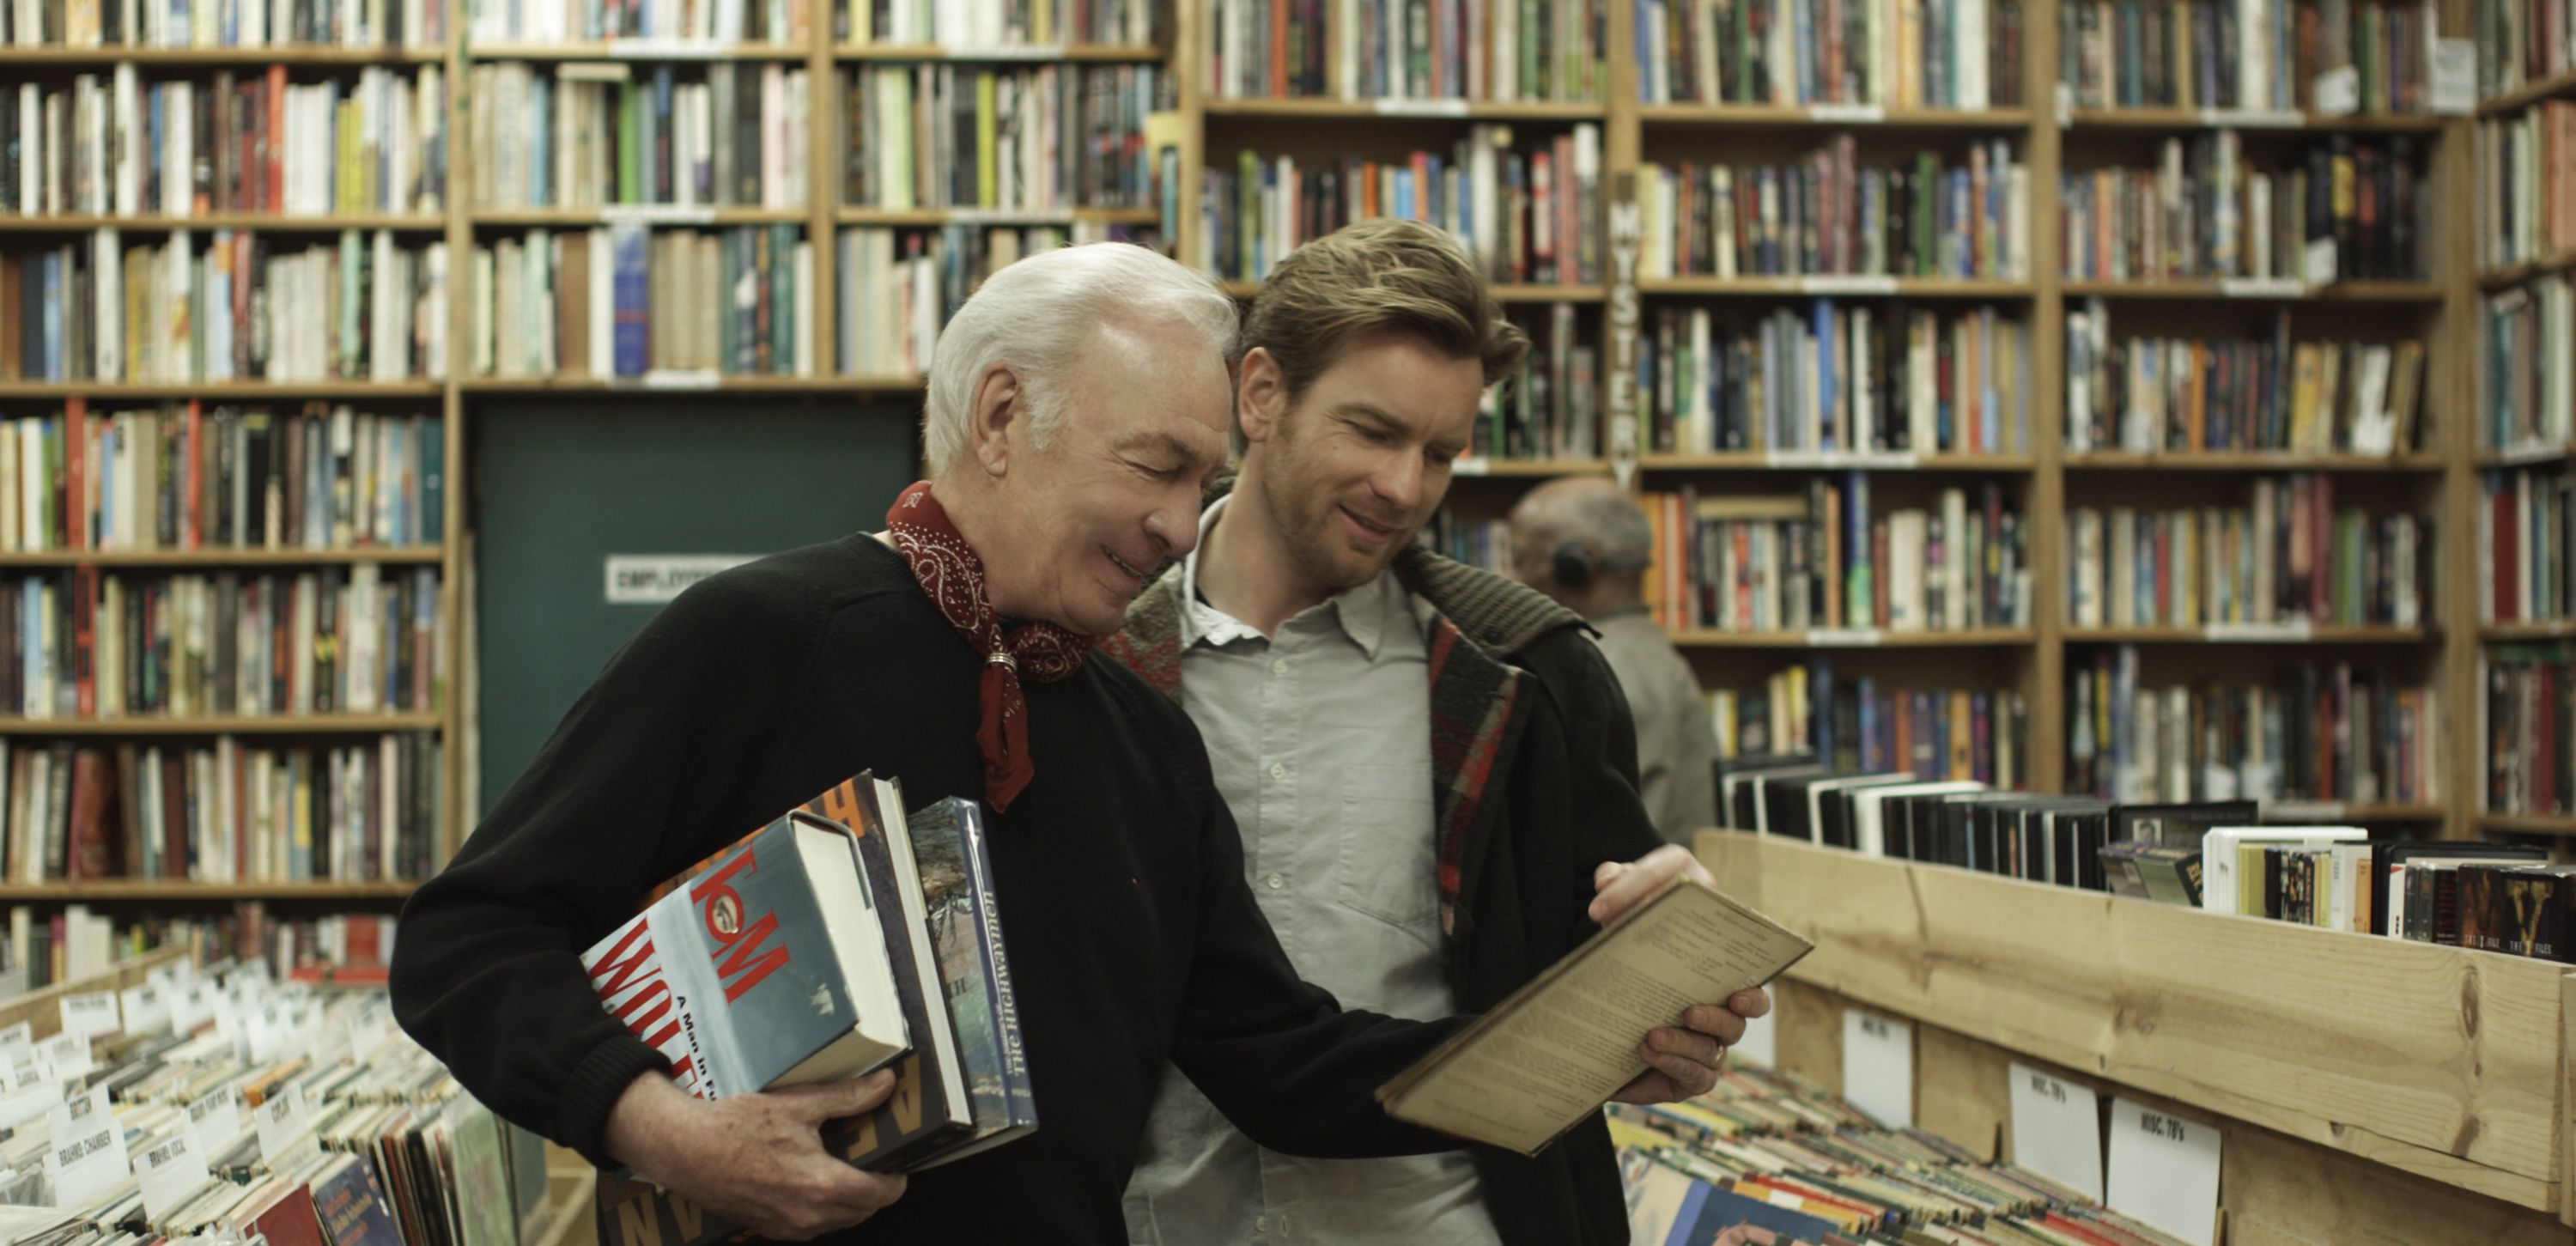 An image from Beginners